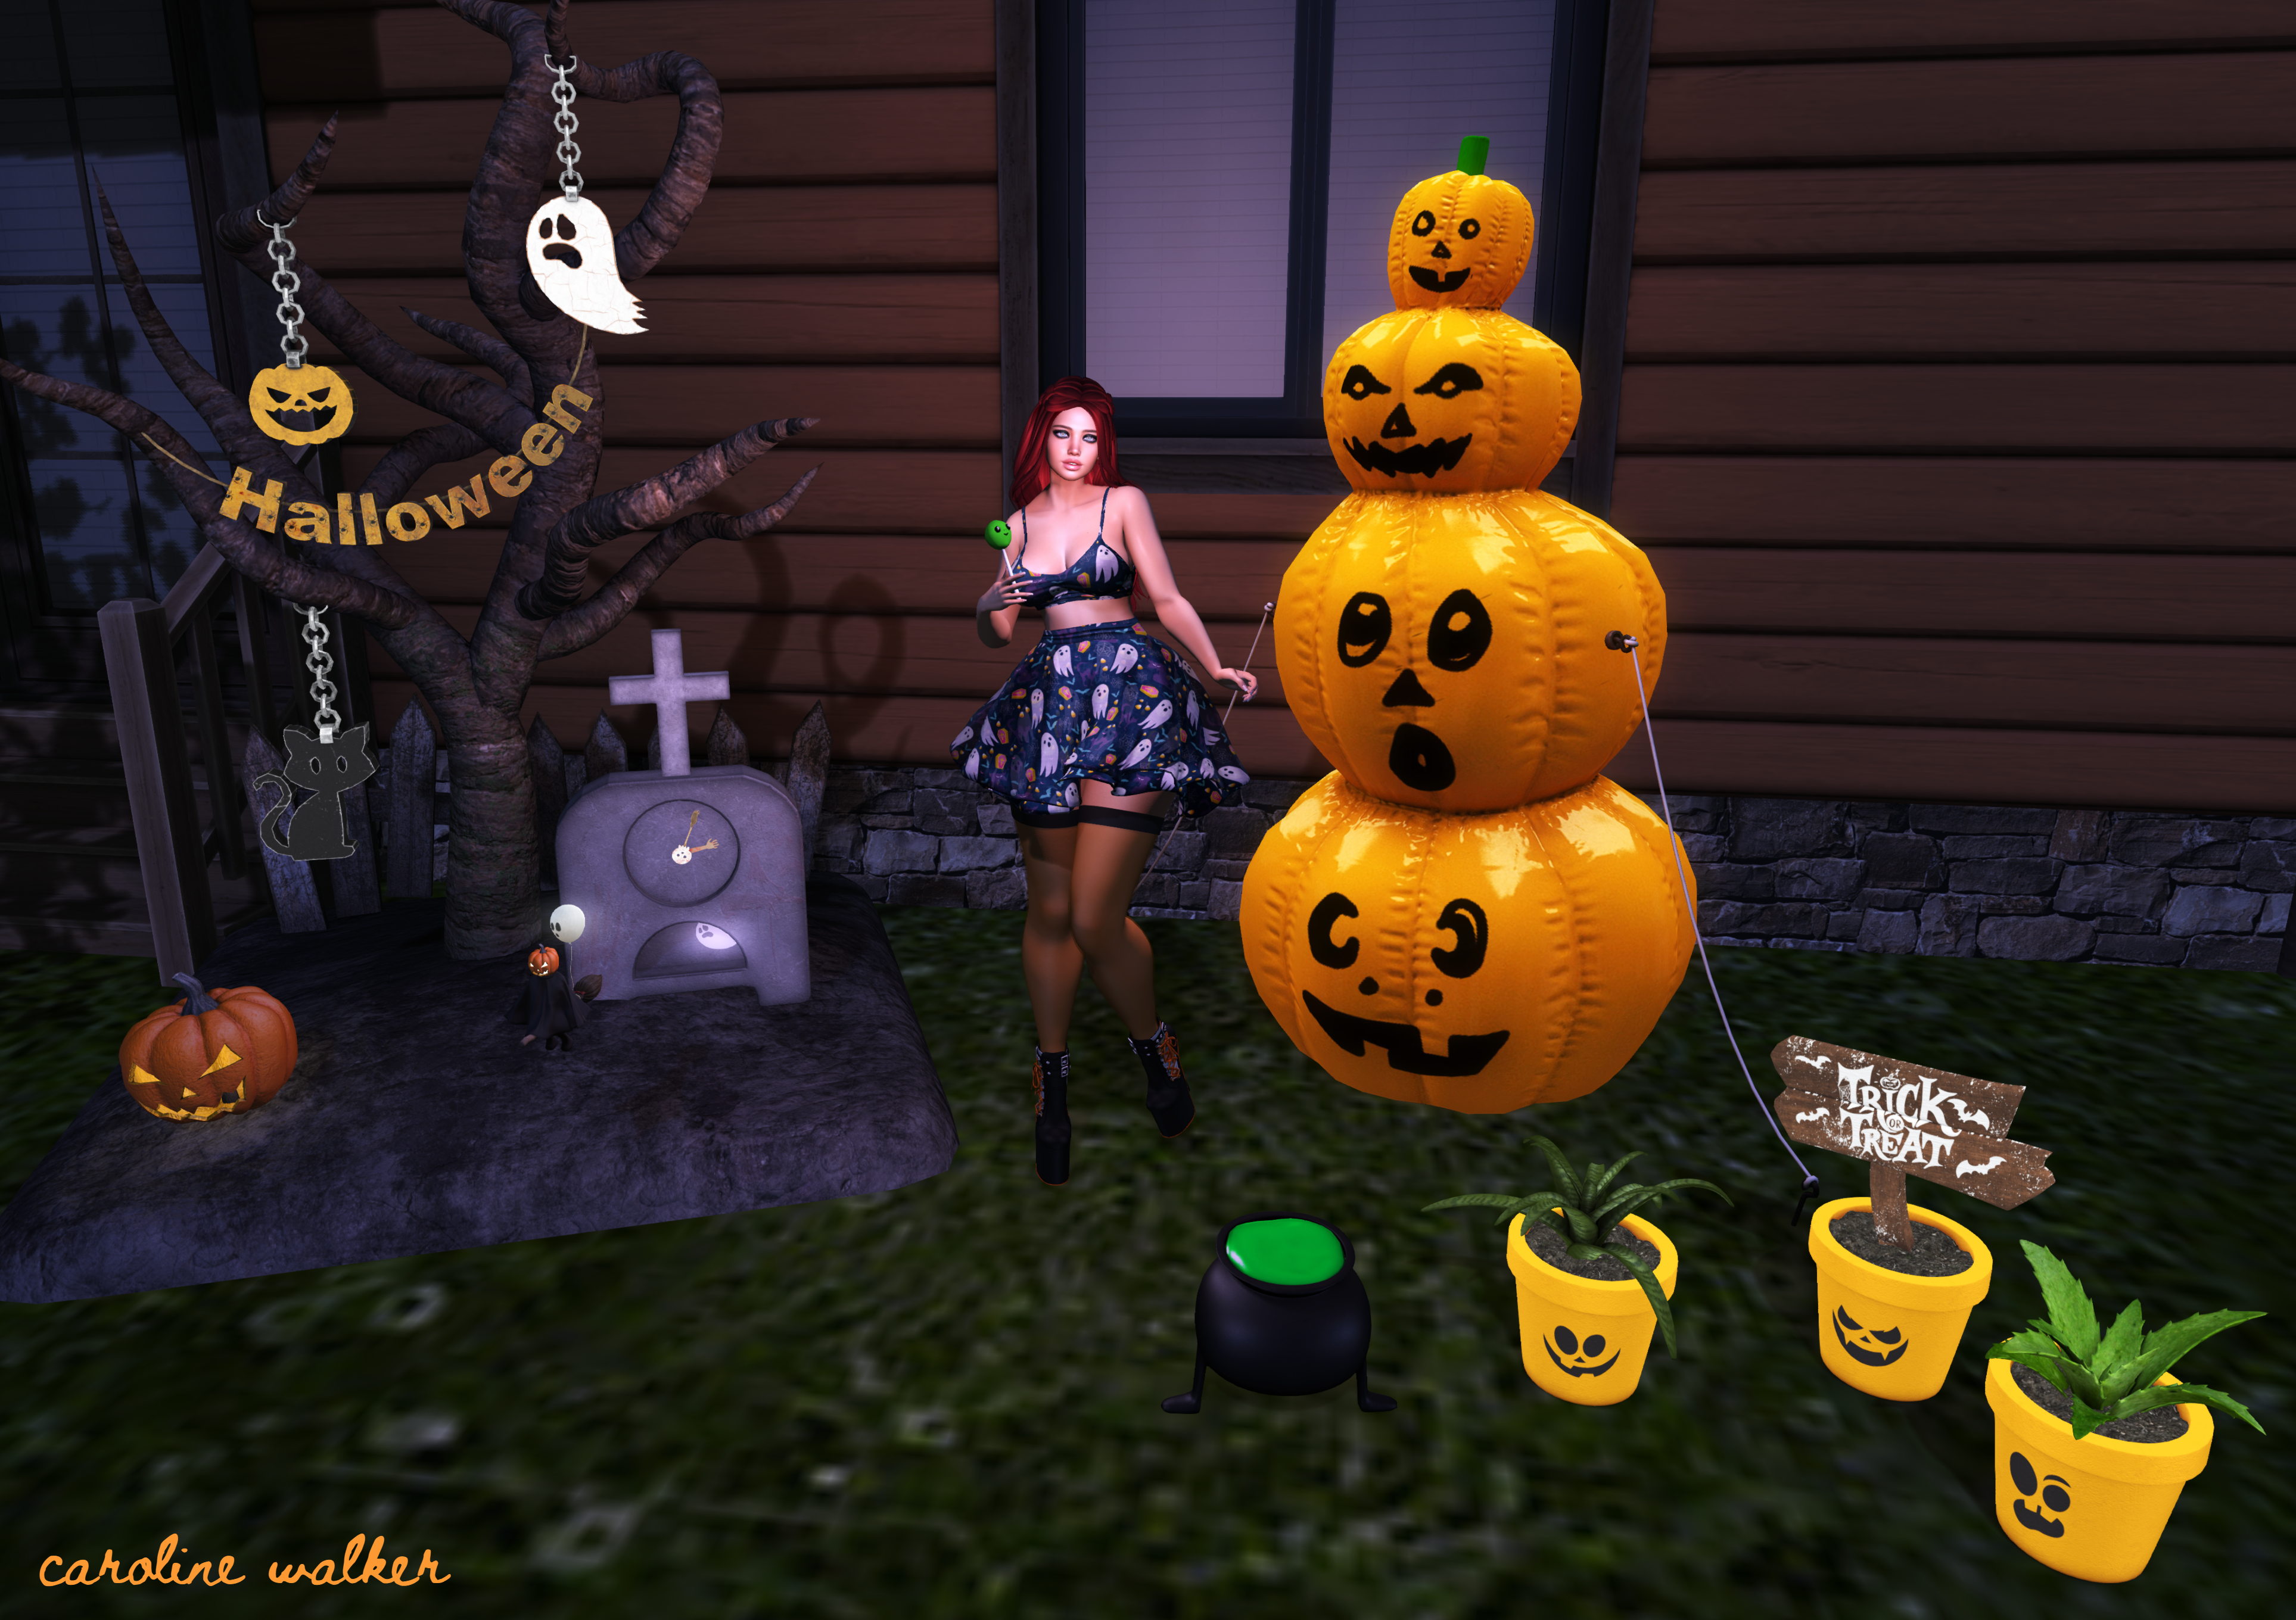 Trick or Treat - Coming Soon